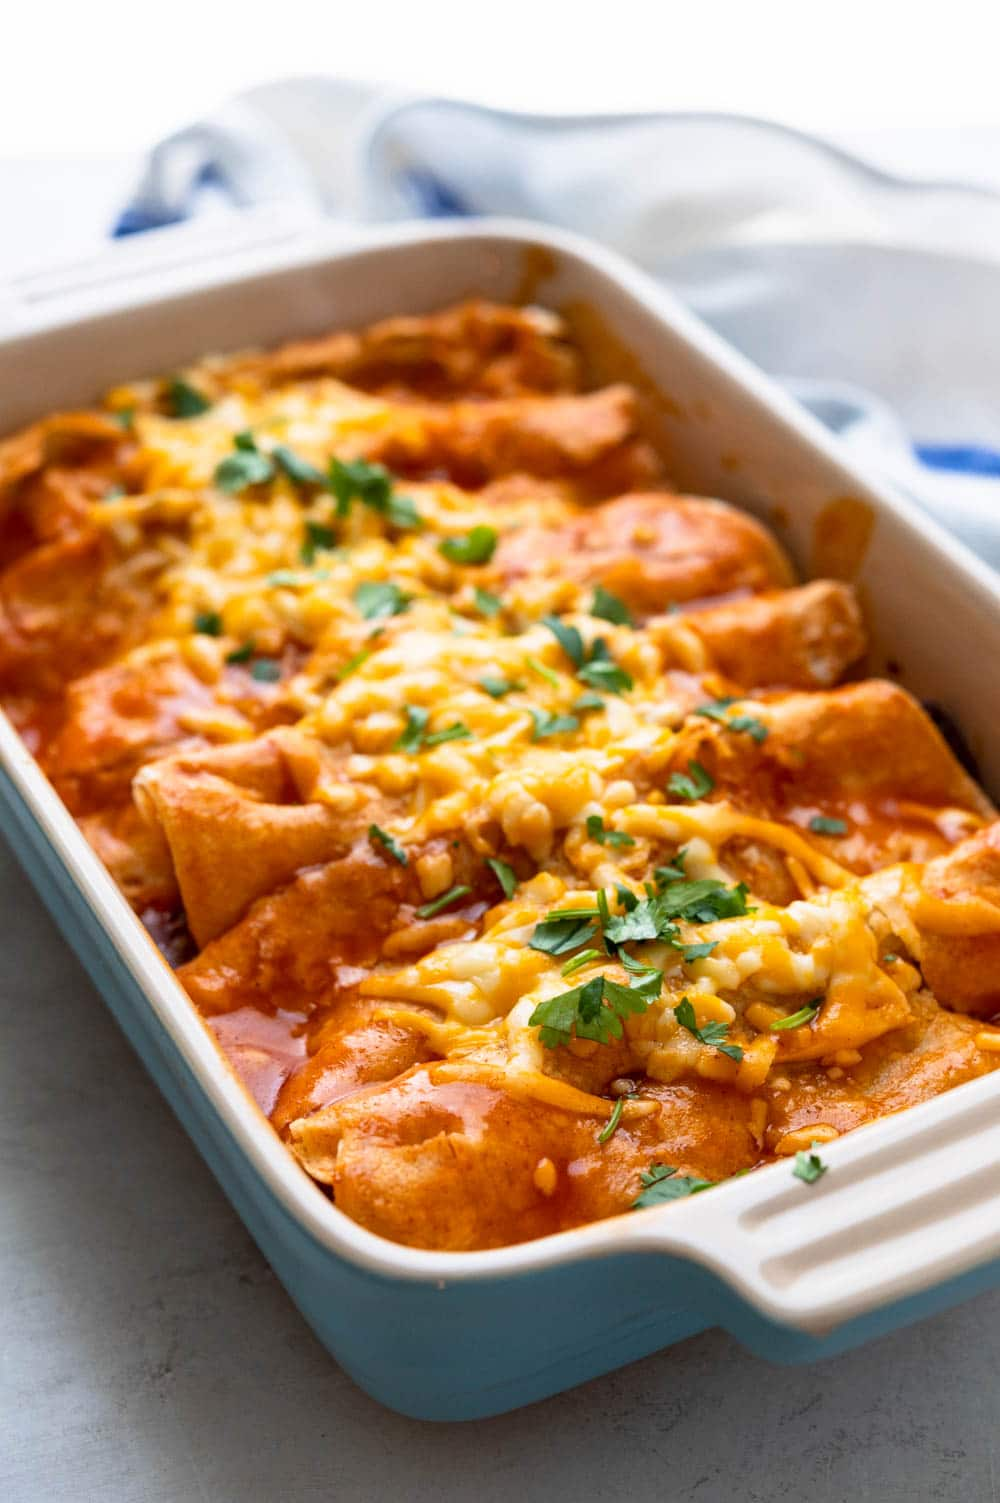 A baked beef enchilada casserole garnished with chopped cilantro.